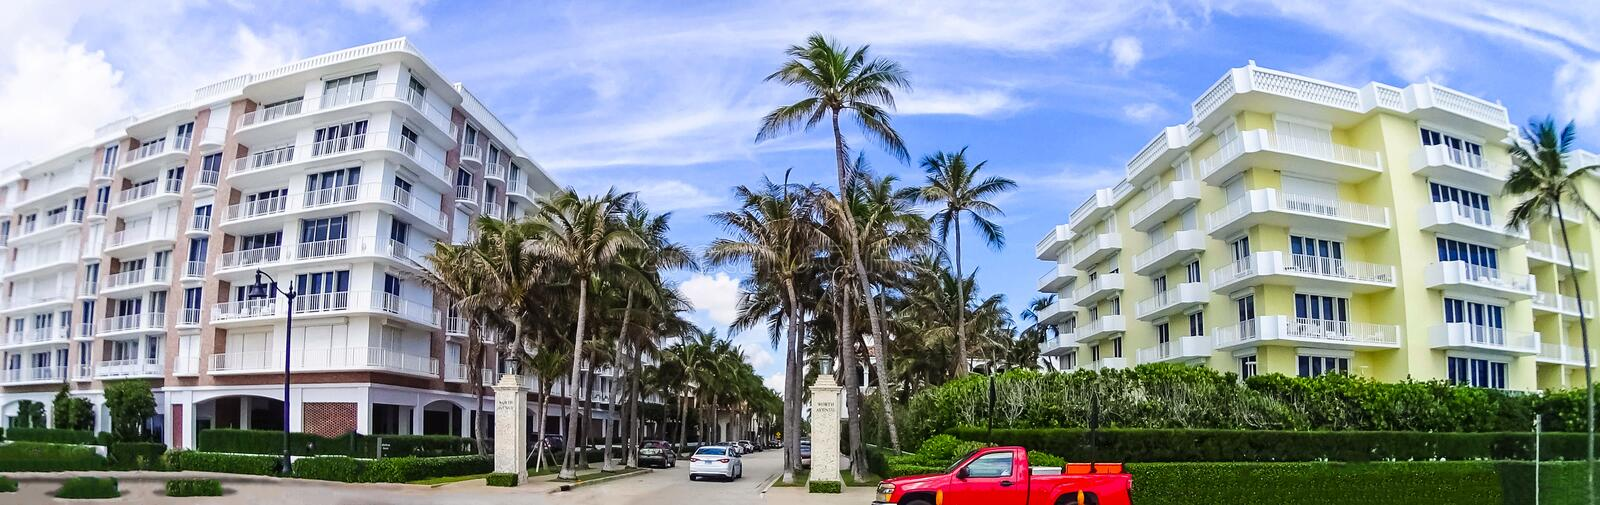 WEST PALM BEACH, la Floride -7 en mai 2018 : En valeur l'avenue, Palm Beach, la Floride, Etats-Unis images stock